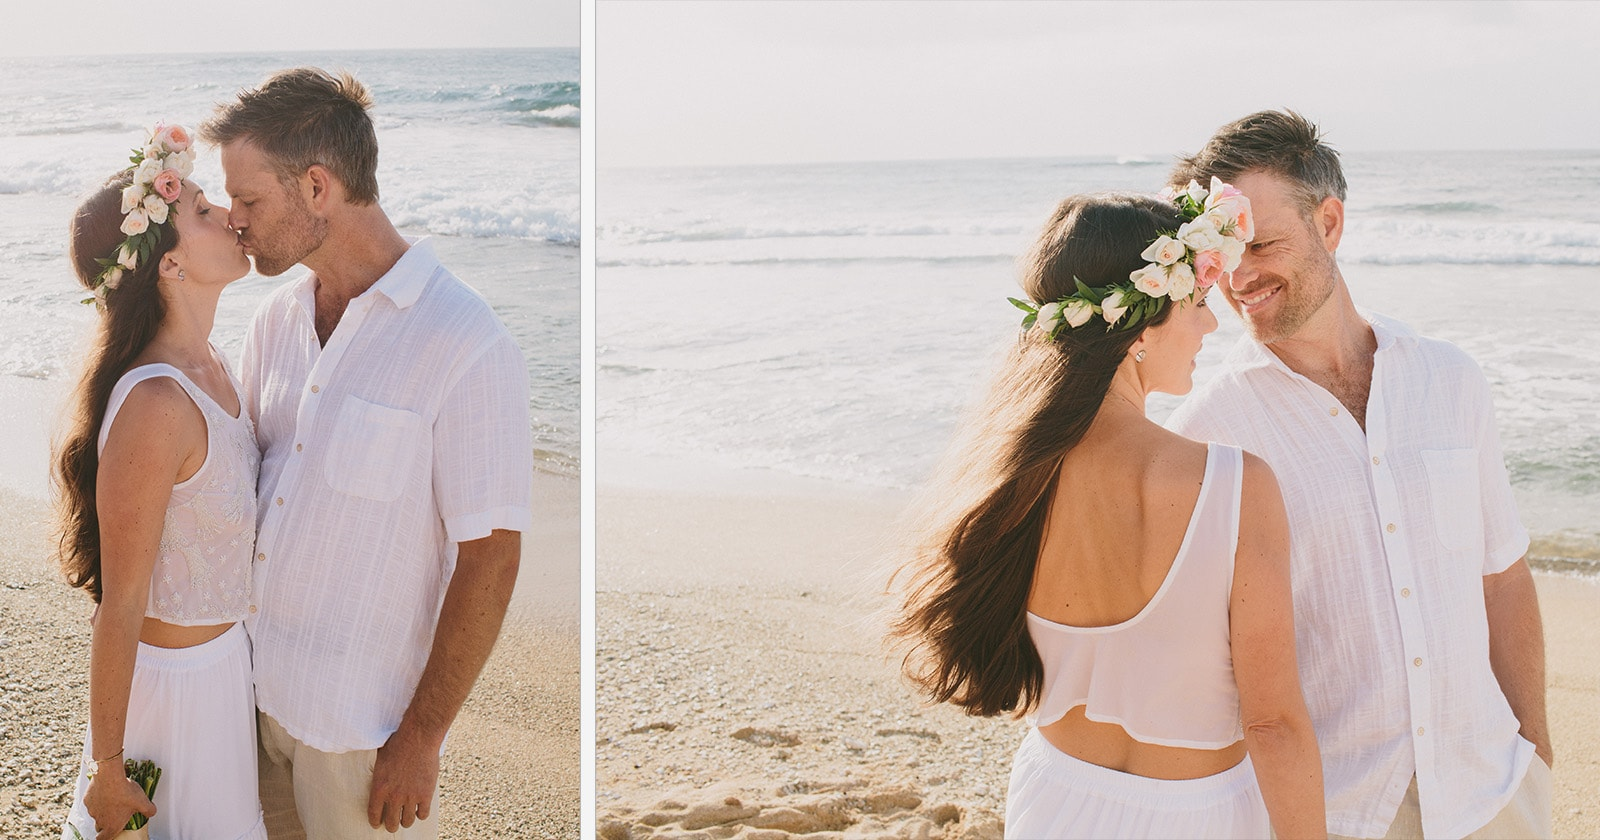 Maui_Wedding_Wailea_Kapalua_Hawaii_Photographer_003